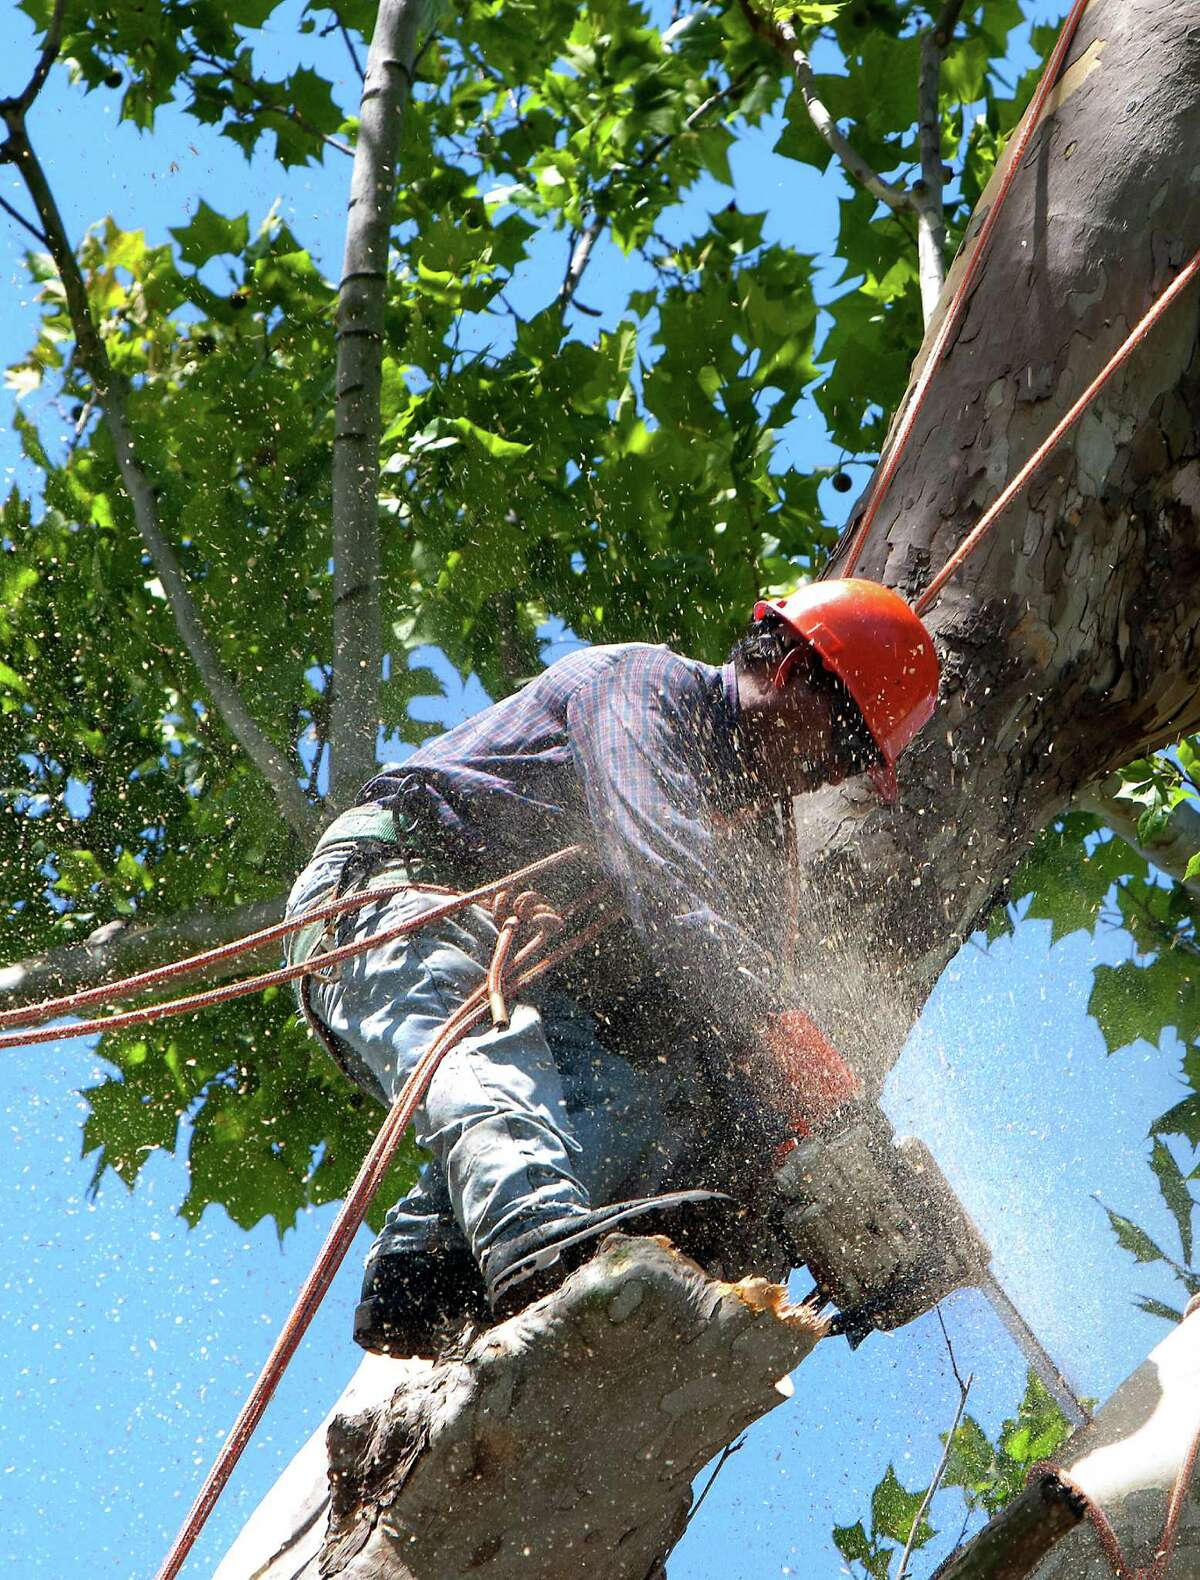 A crew cuts down a historic, century-old Sycamore tree at the corner of Oxford Street and 23rd St., Monday, June 17, 2013, in Houston. Locals showed their support in keeping the tree as they stood in protest. The tree is 106-feet tall, according to the 2011 Harris County Tree Registry.